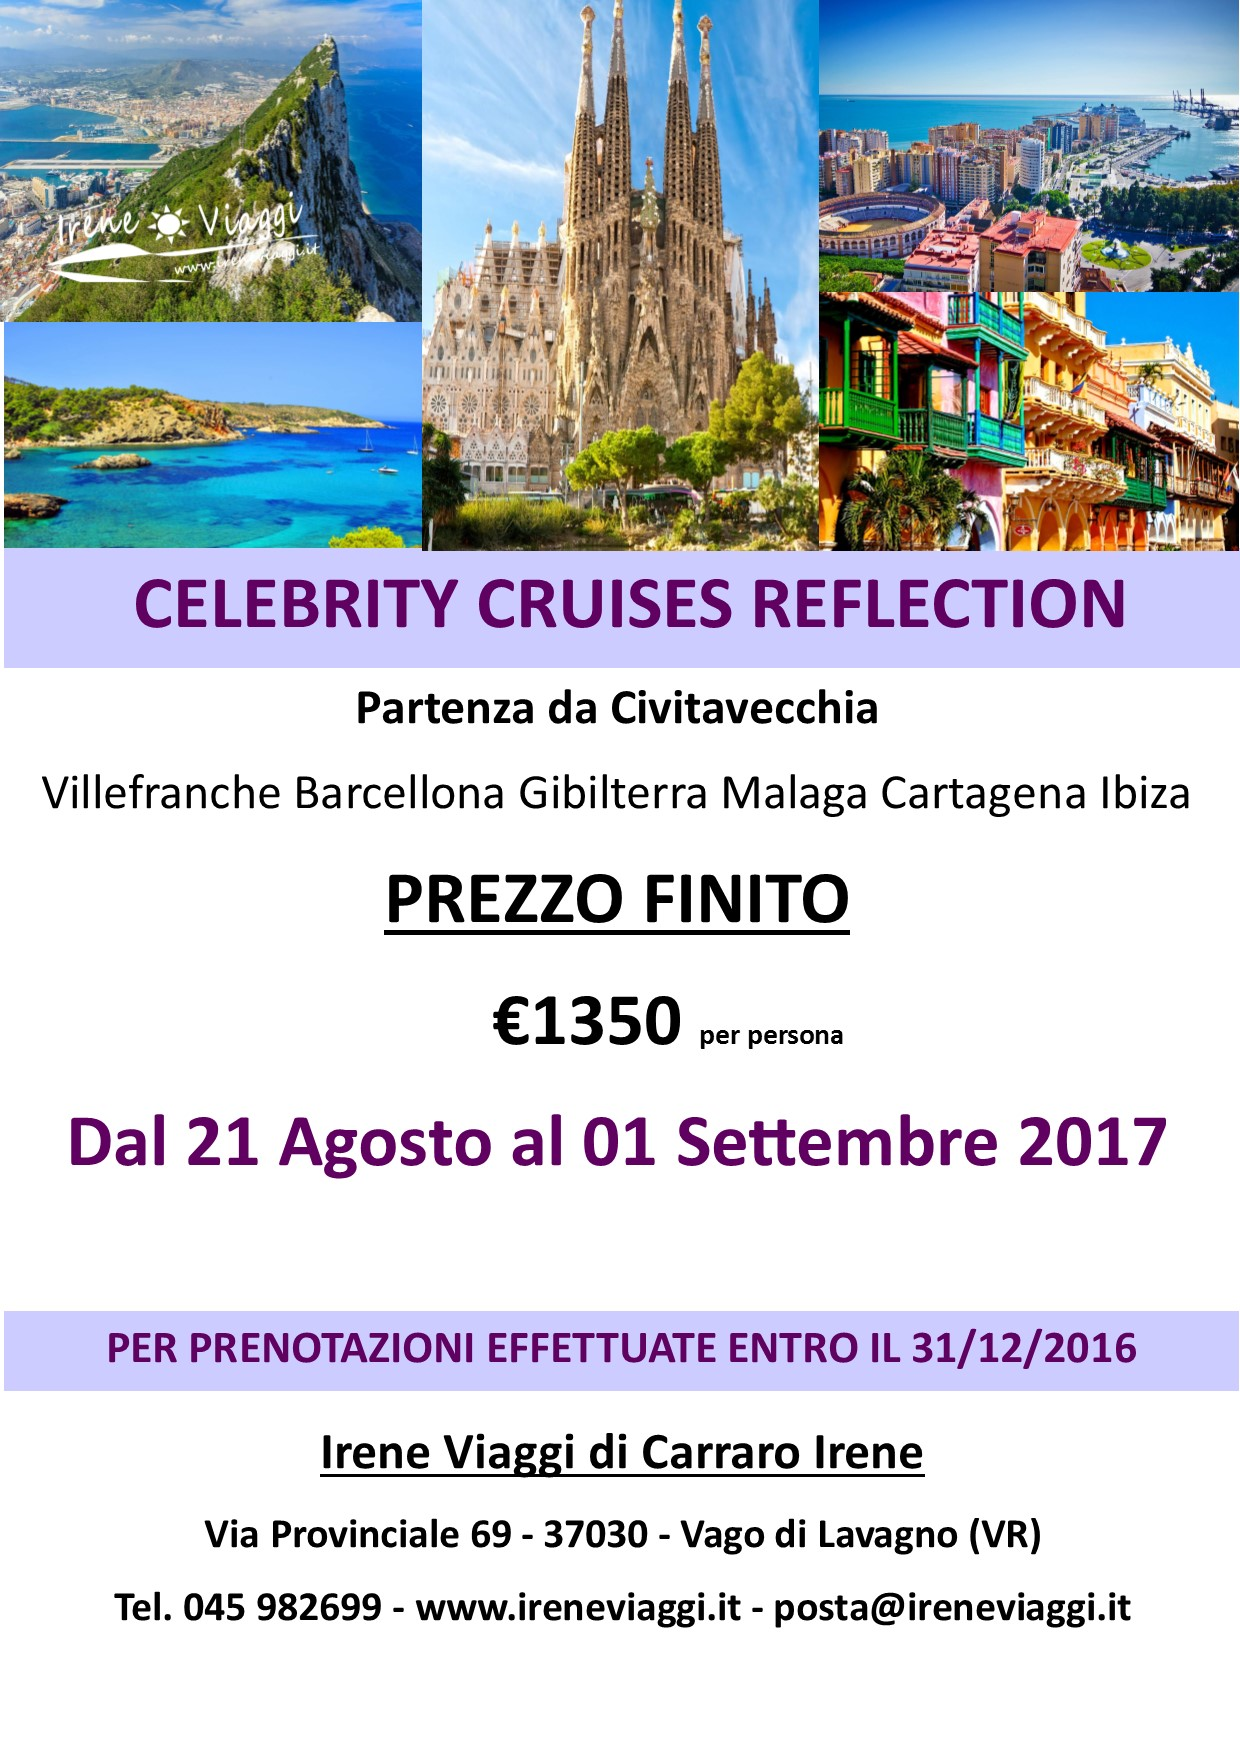 Crociera a bordo di Celebrity Cruises Reflection - Spagna